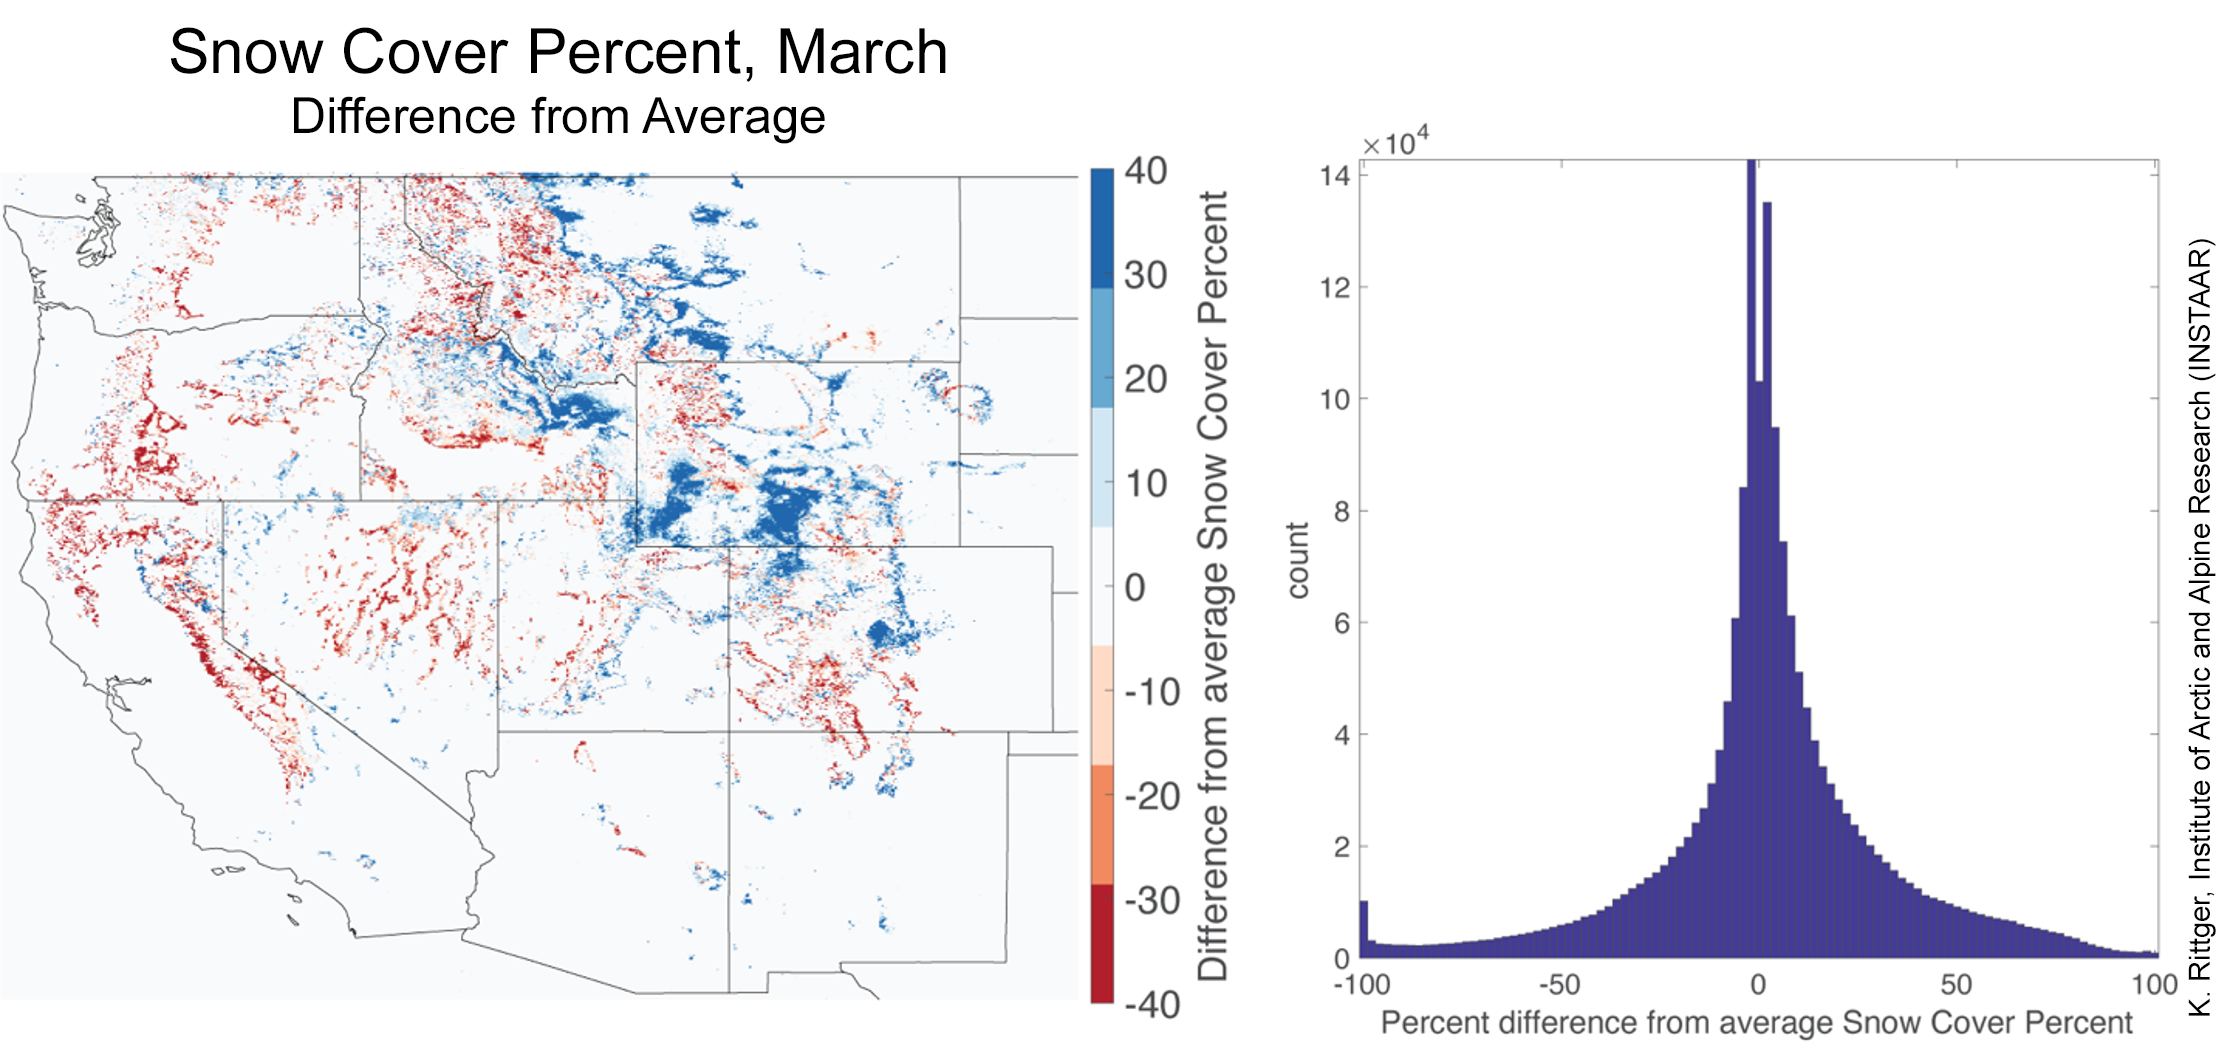 Snow-covered area, March as a difference from average